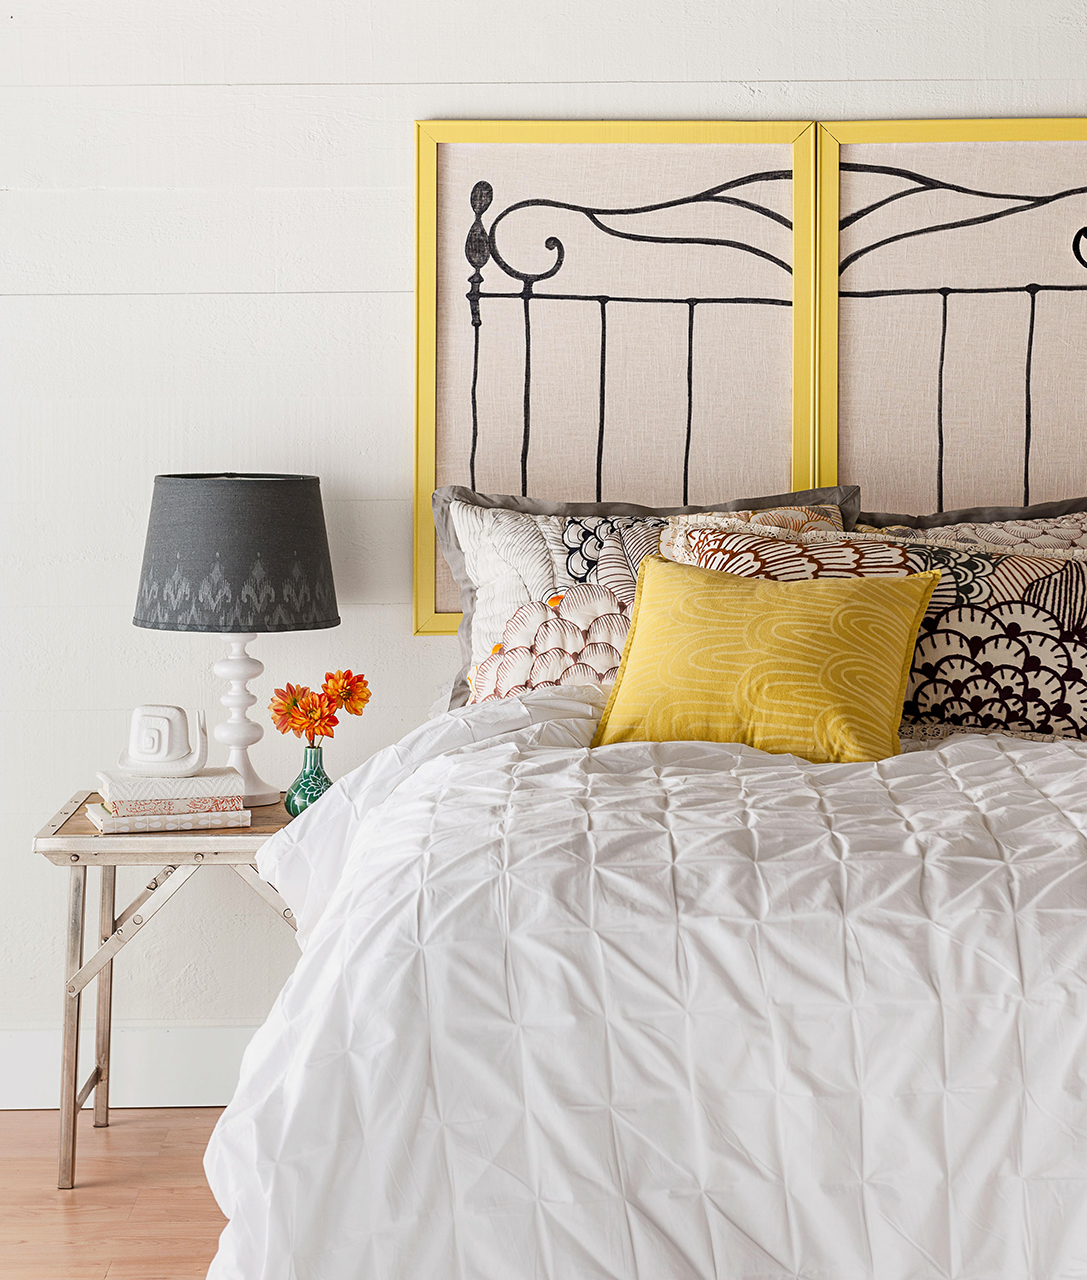 diy painted frames headboard